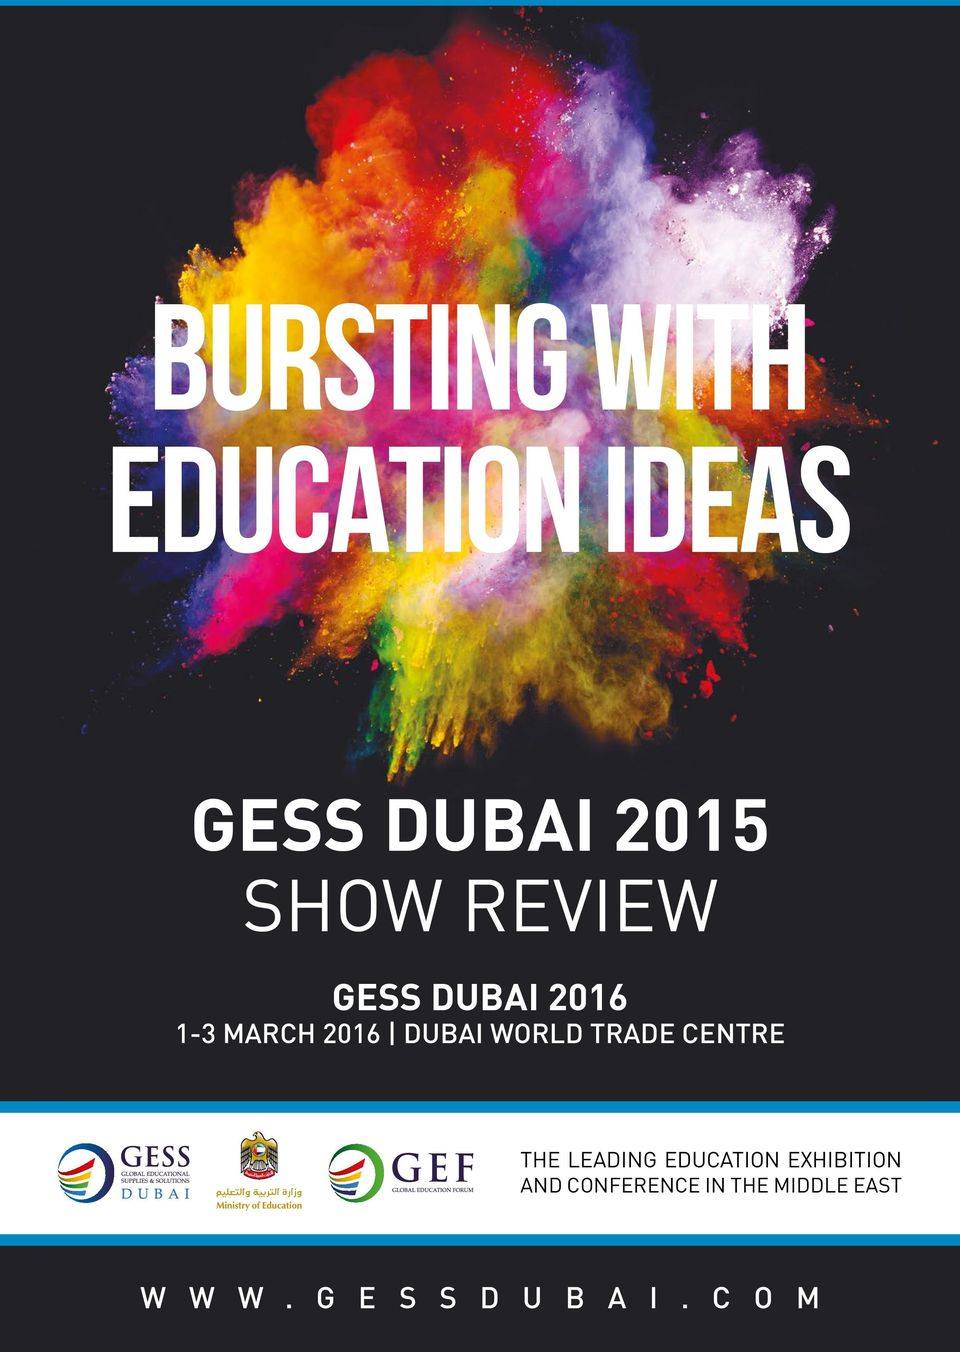 TRADE CENTRE THE LEADING EDUCATION EXHIBITION AND